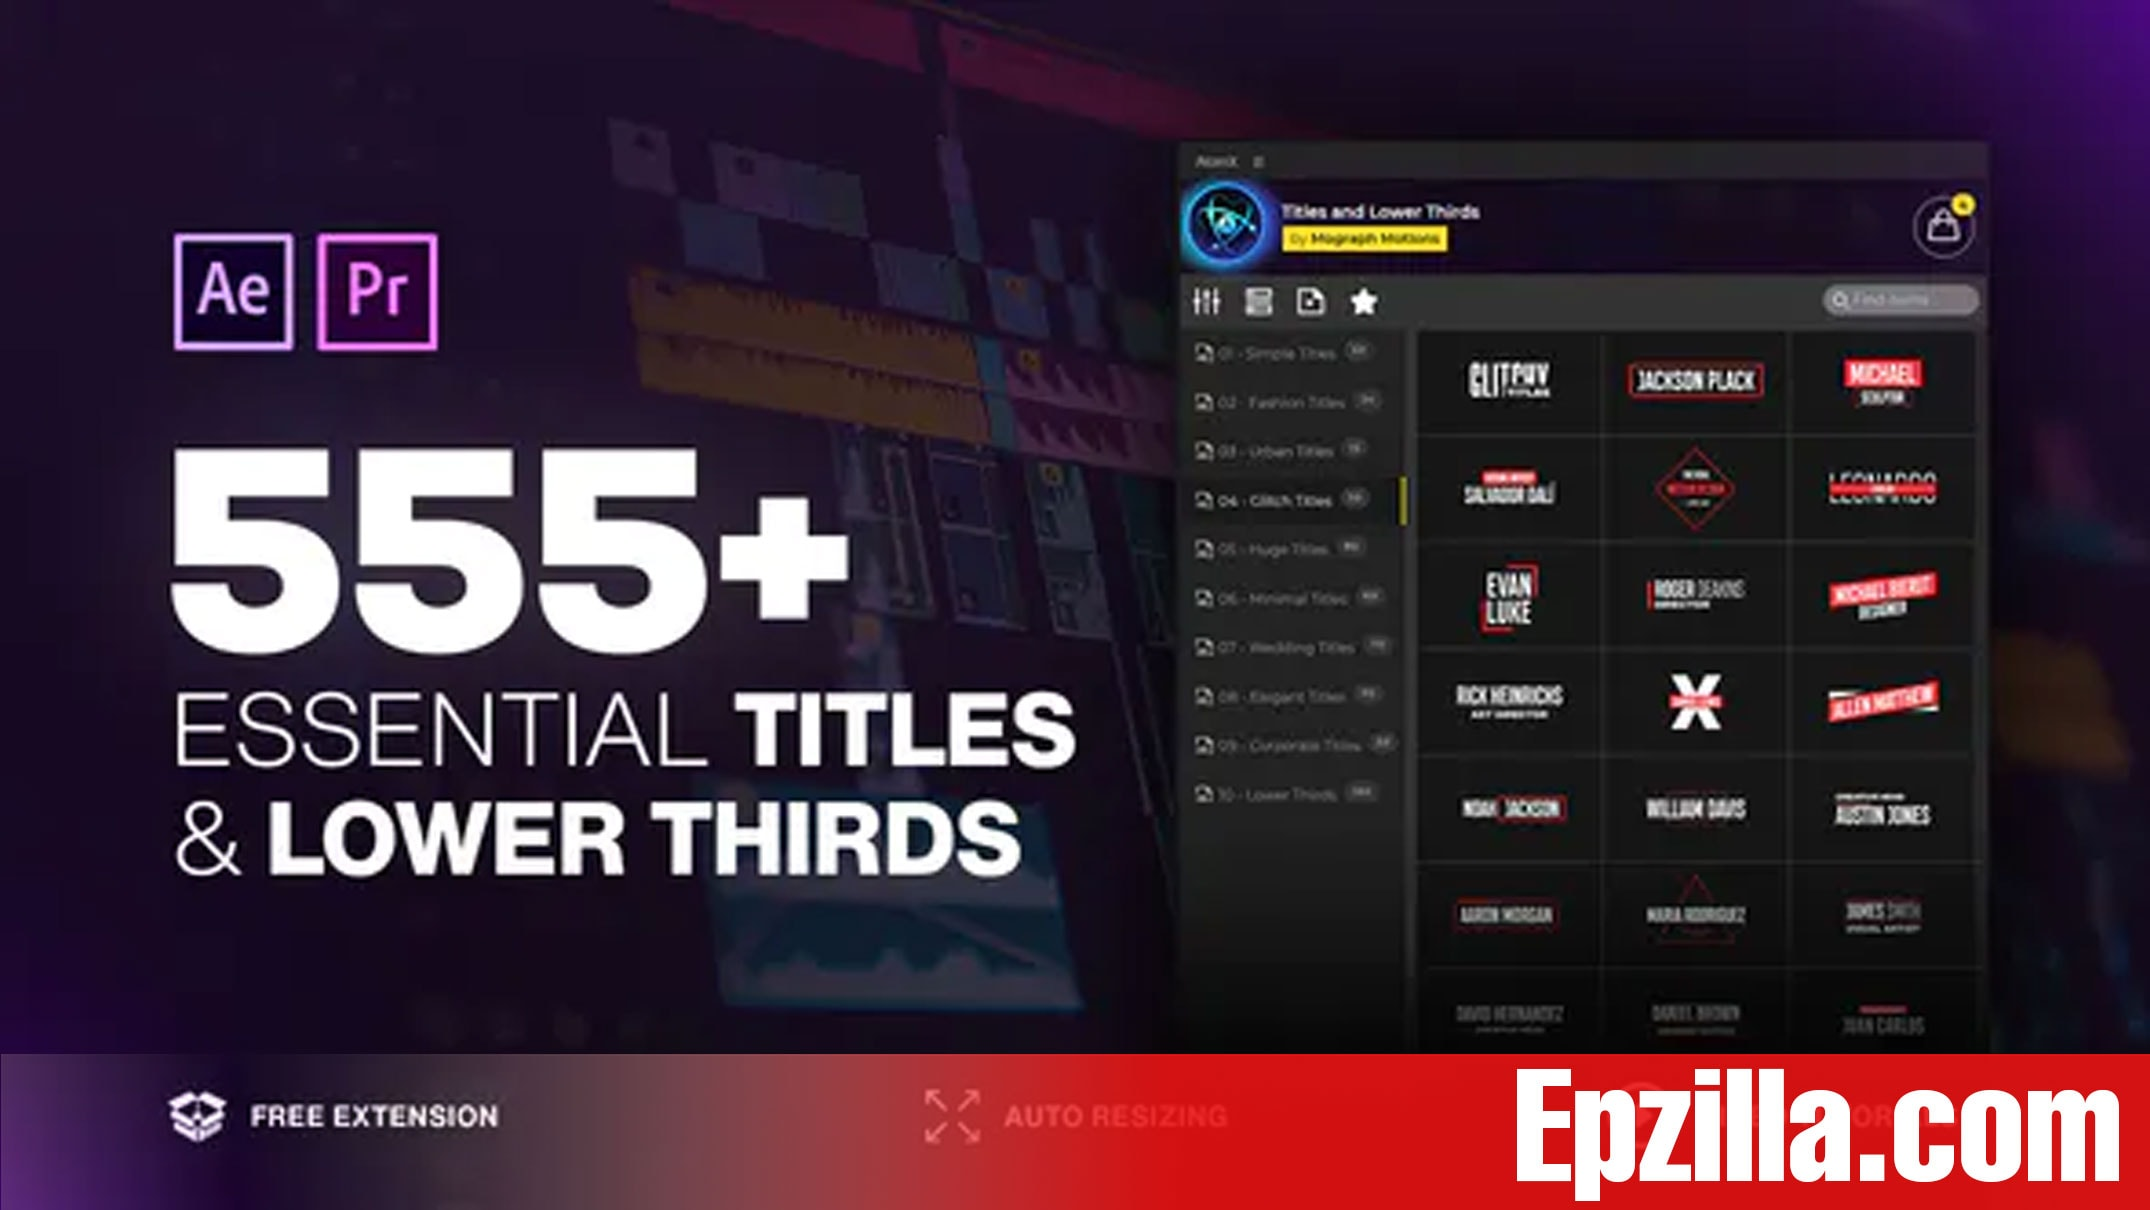 Videohive AtomX 555+ Essential Titles and Lower Thirds 31130393 Free Download From Epzilla.com